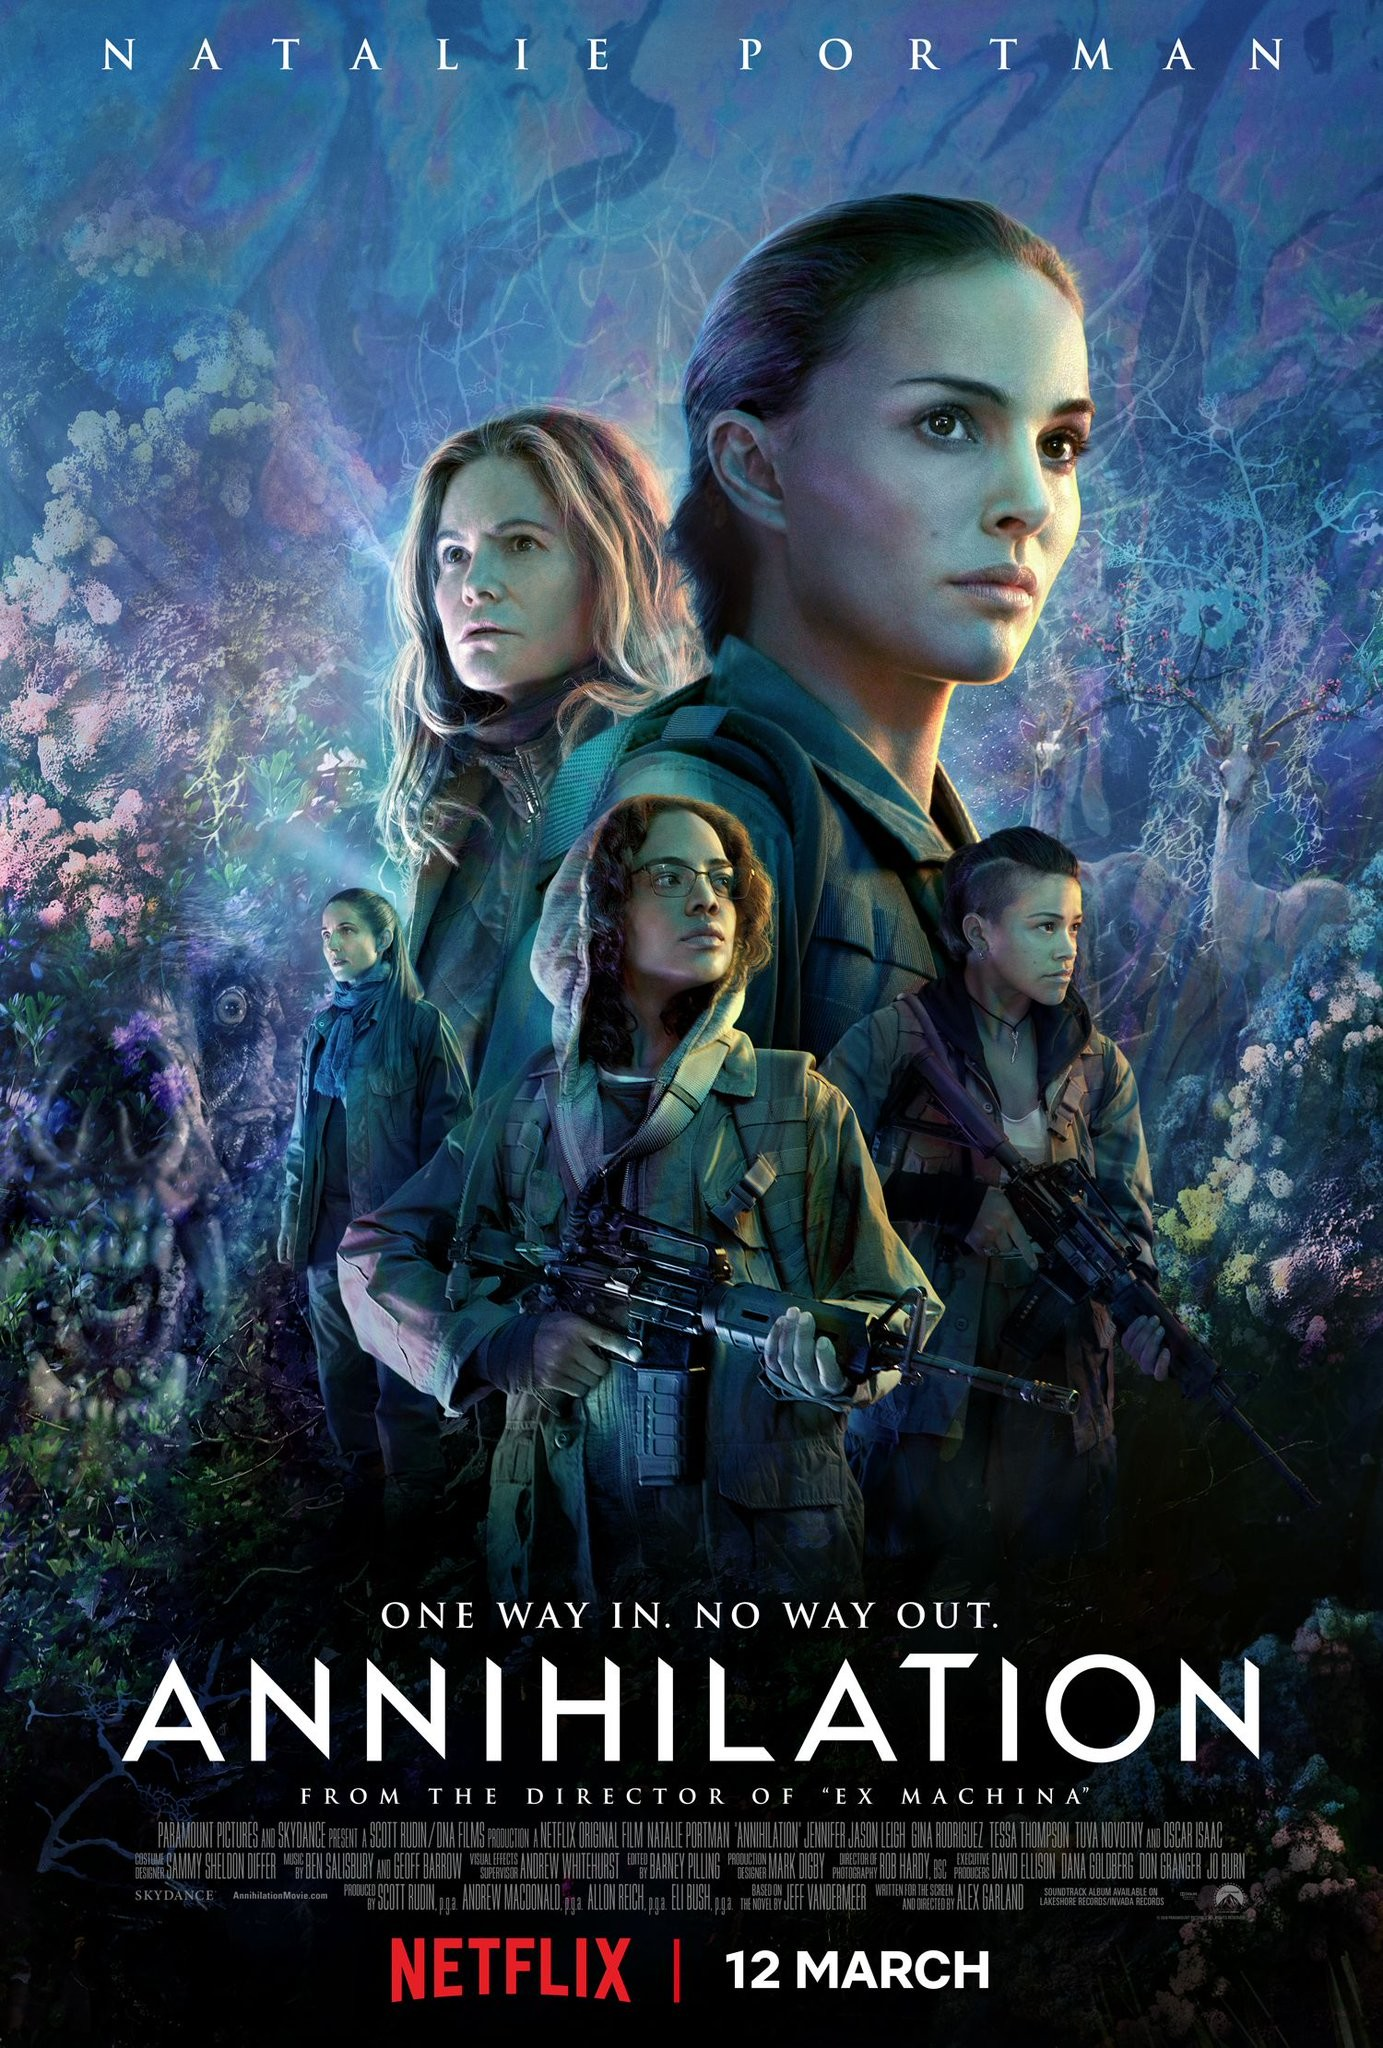 ANNIHILATION [Week Long Engagement]